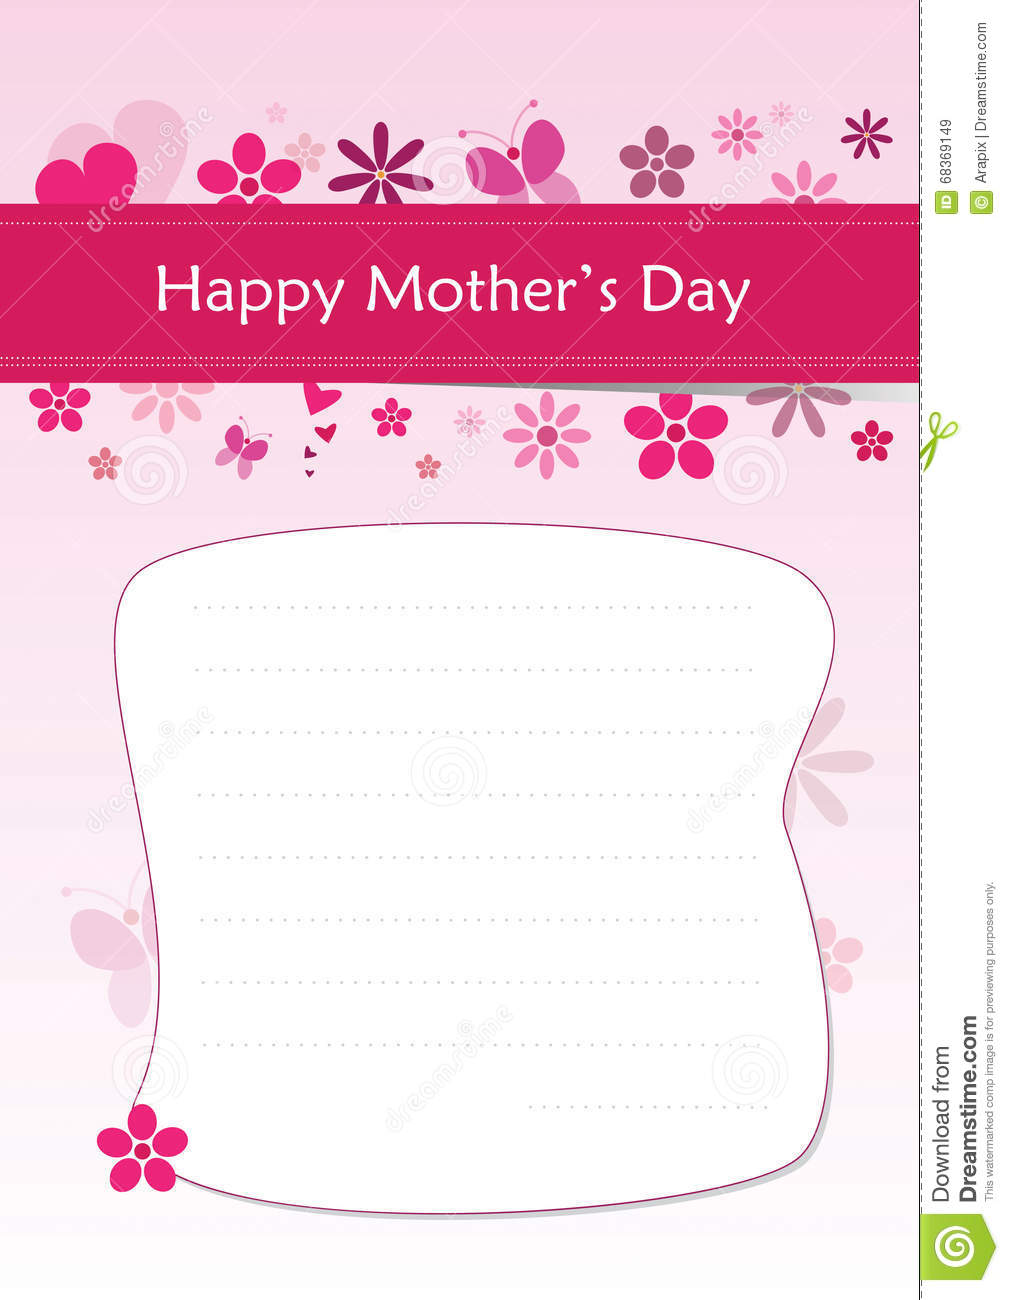 Happy MotherS Day  A Greeting Letter Stock Vector  Illustration